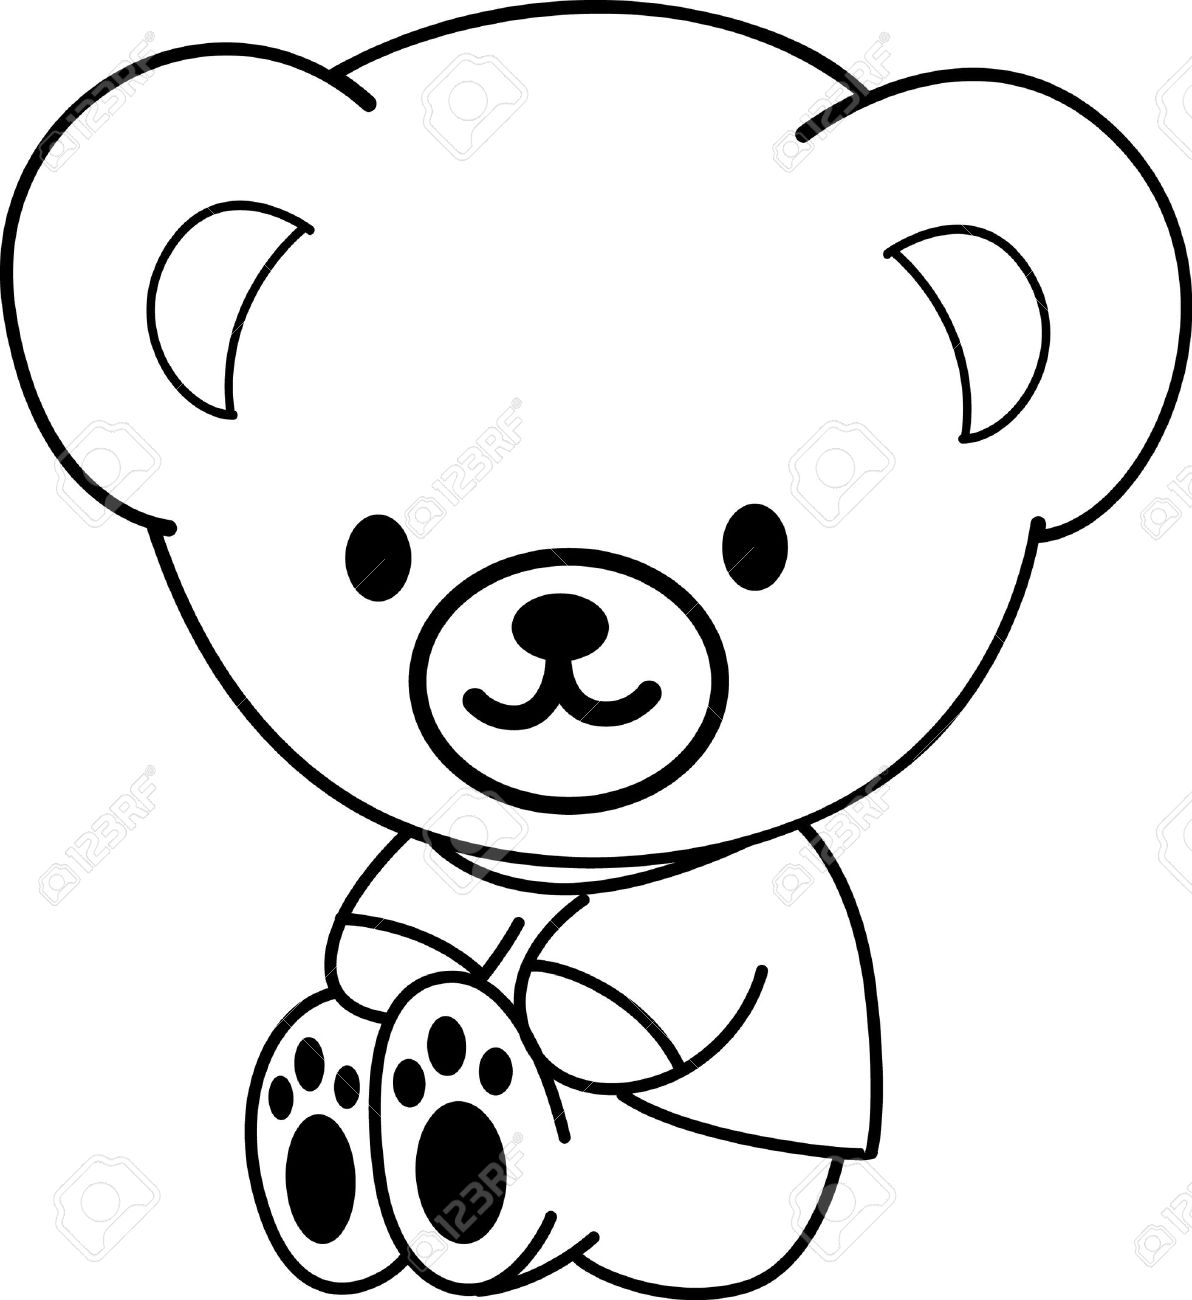 1192x1300 Teddy Bear Drawing Download Cute Easy Black And White Beer Bottle